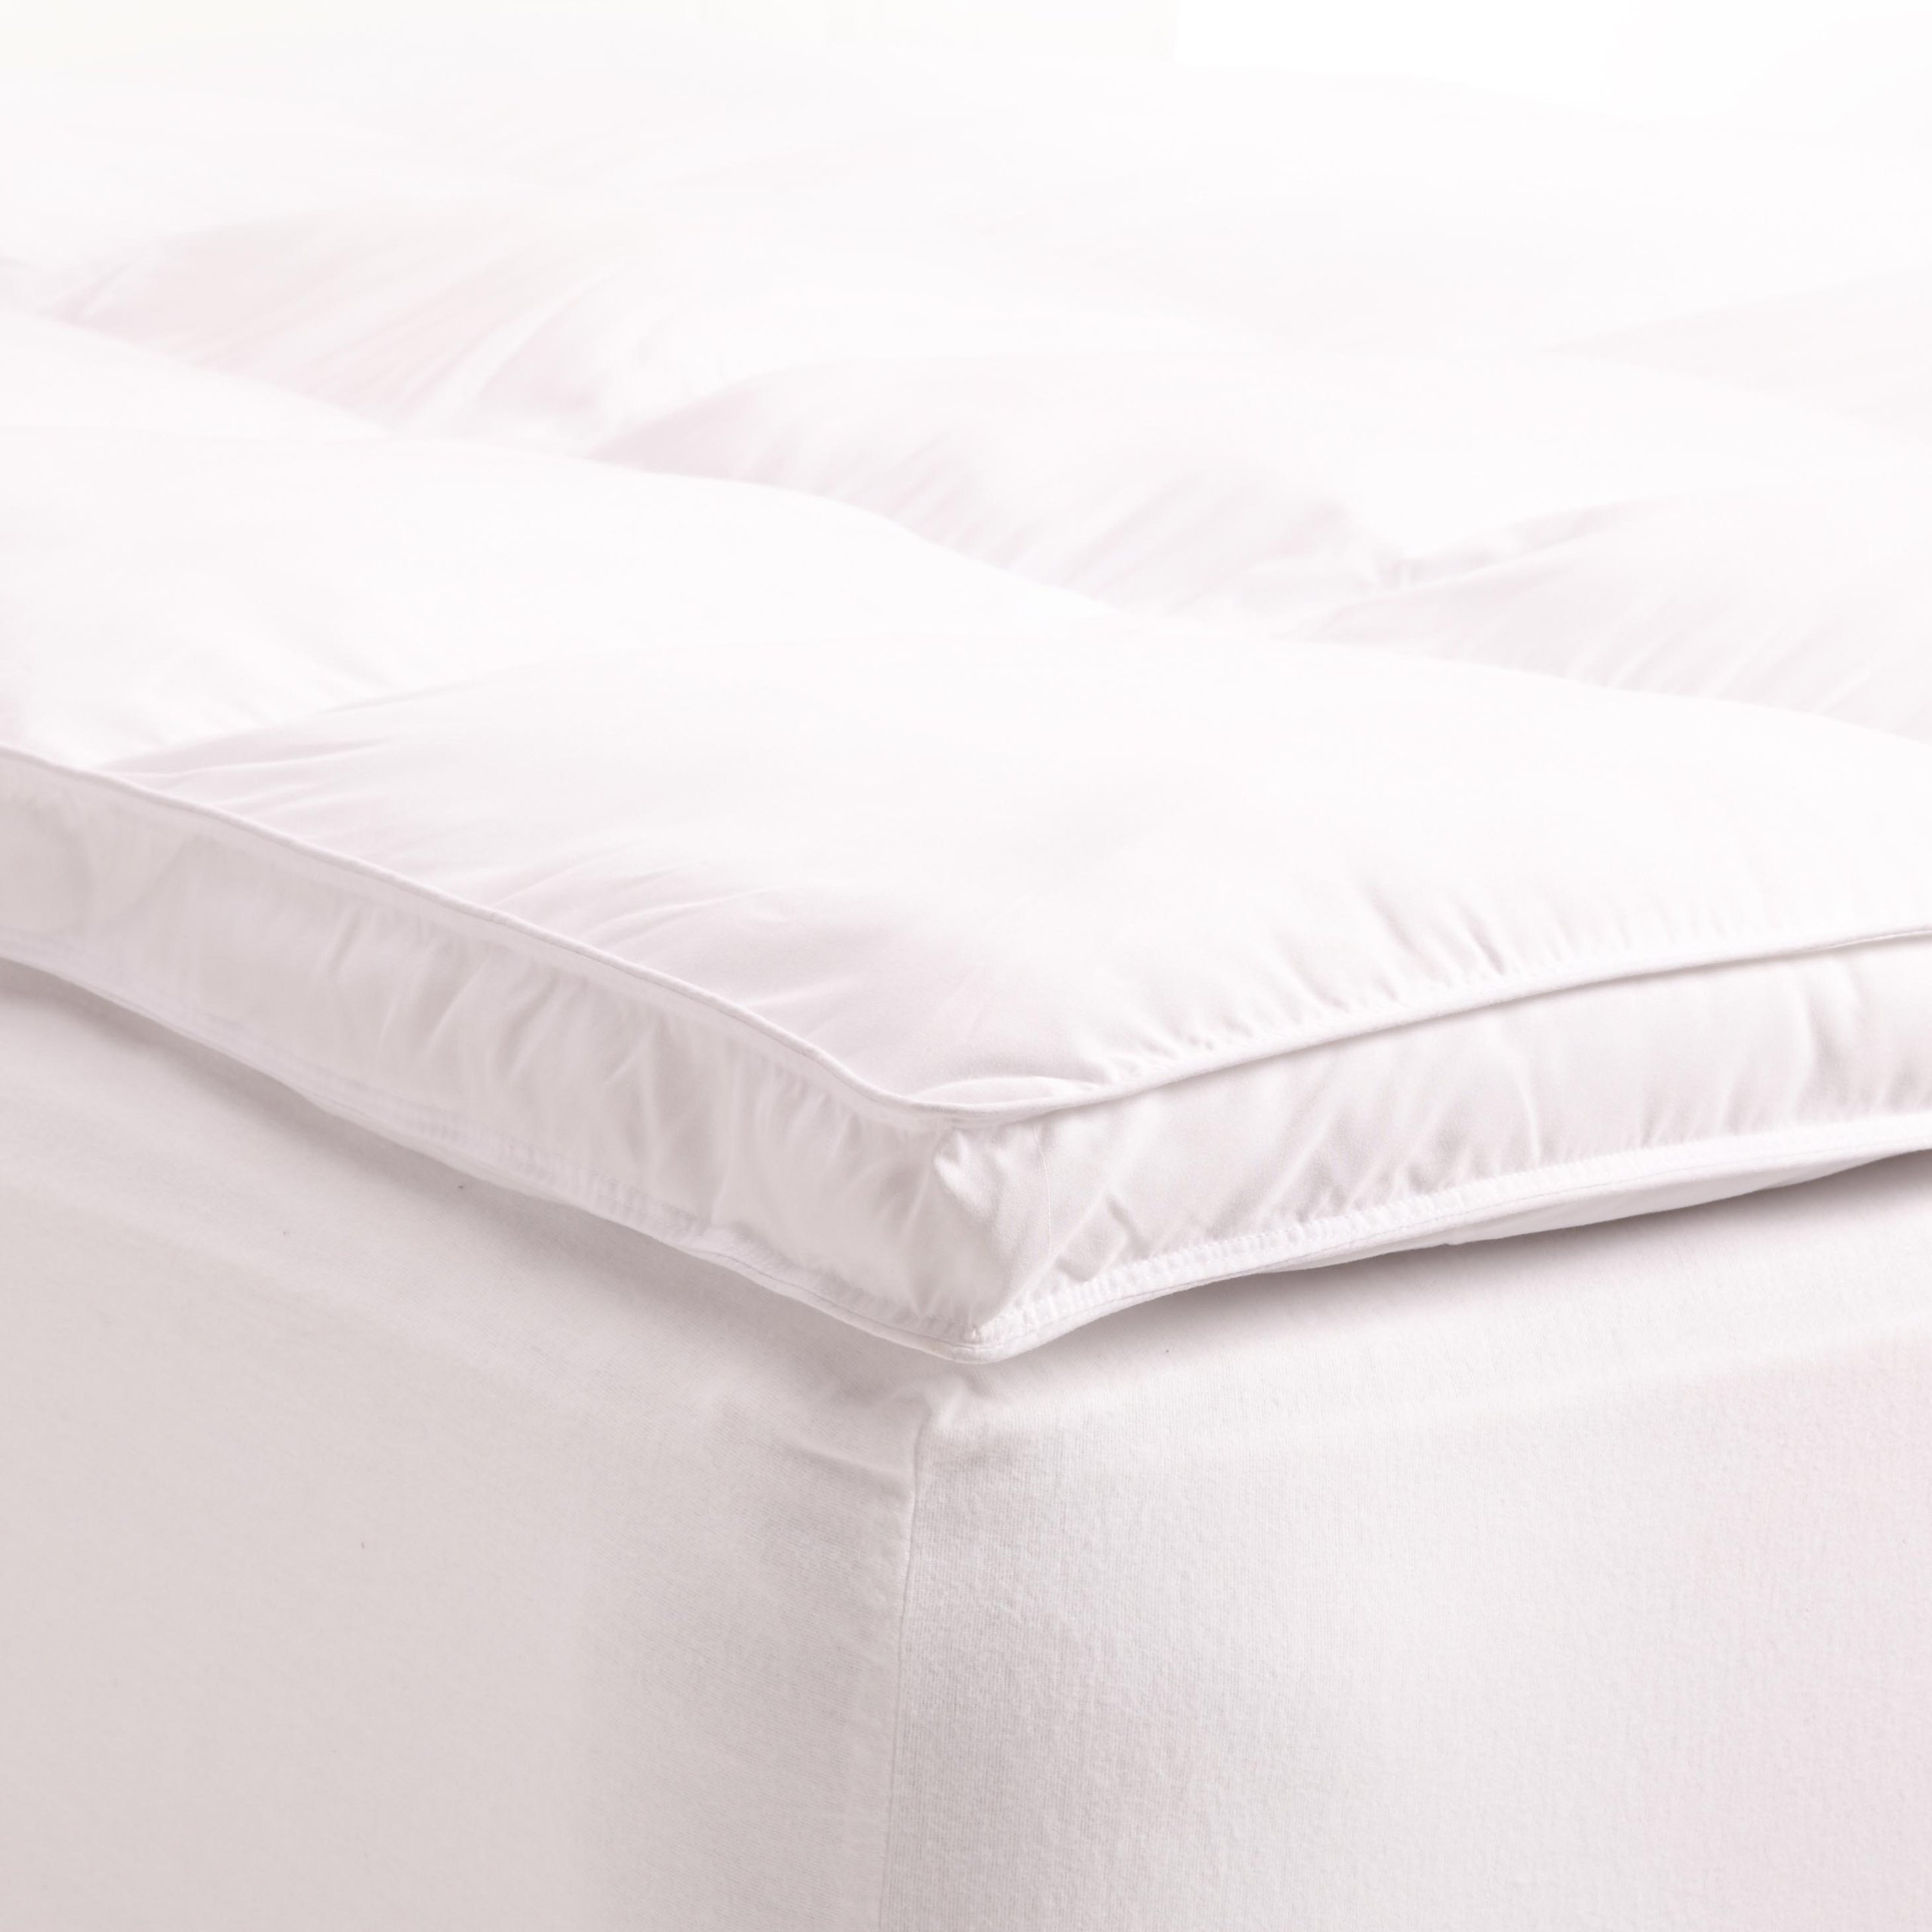 Superior King Mattress Topper, Hypoallergenic White Down Alternative Featherbed Mattress Pad - Plush, Overfilled, and 2'' Thick by Superior